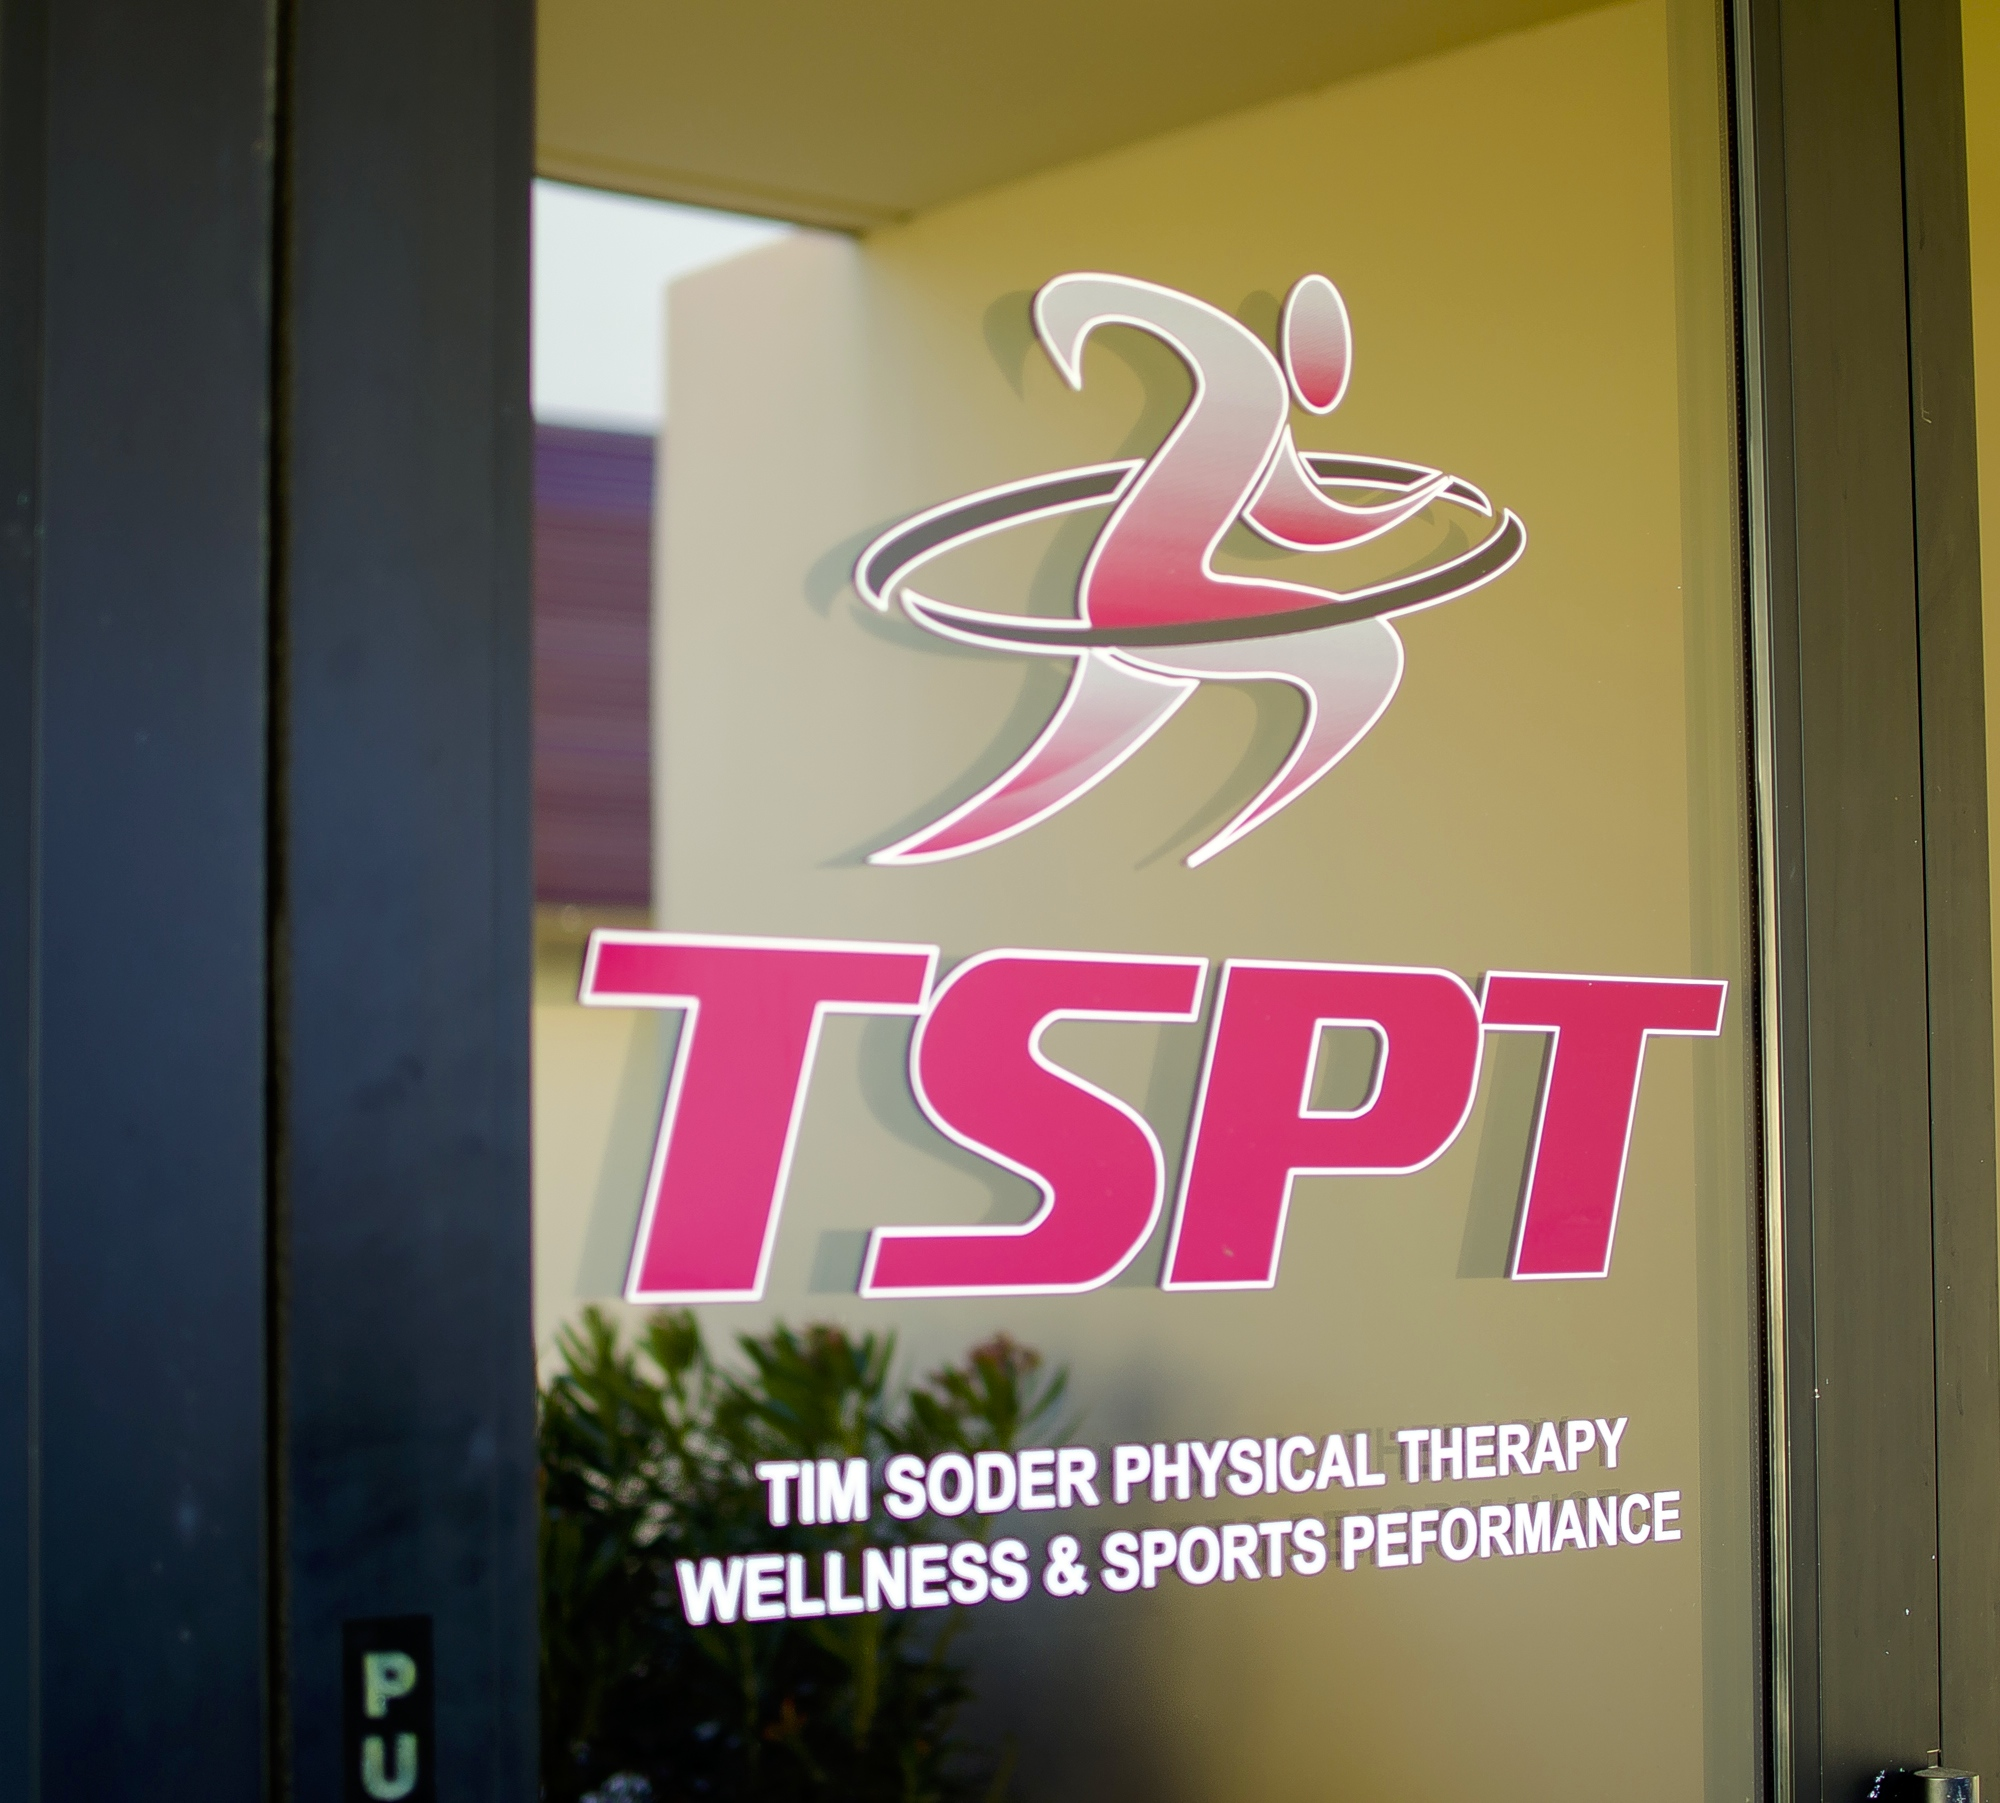 Tim Soder Physical Therapy, Wellness & Sports Performance